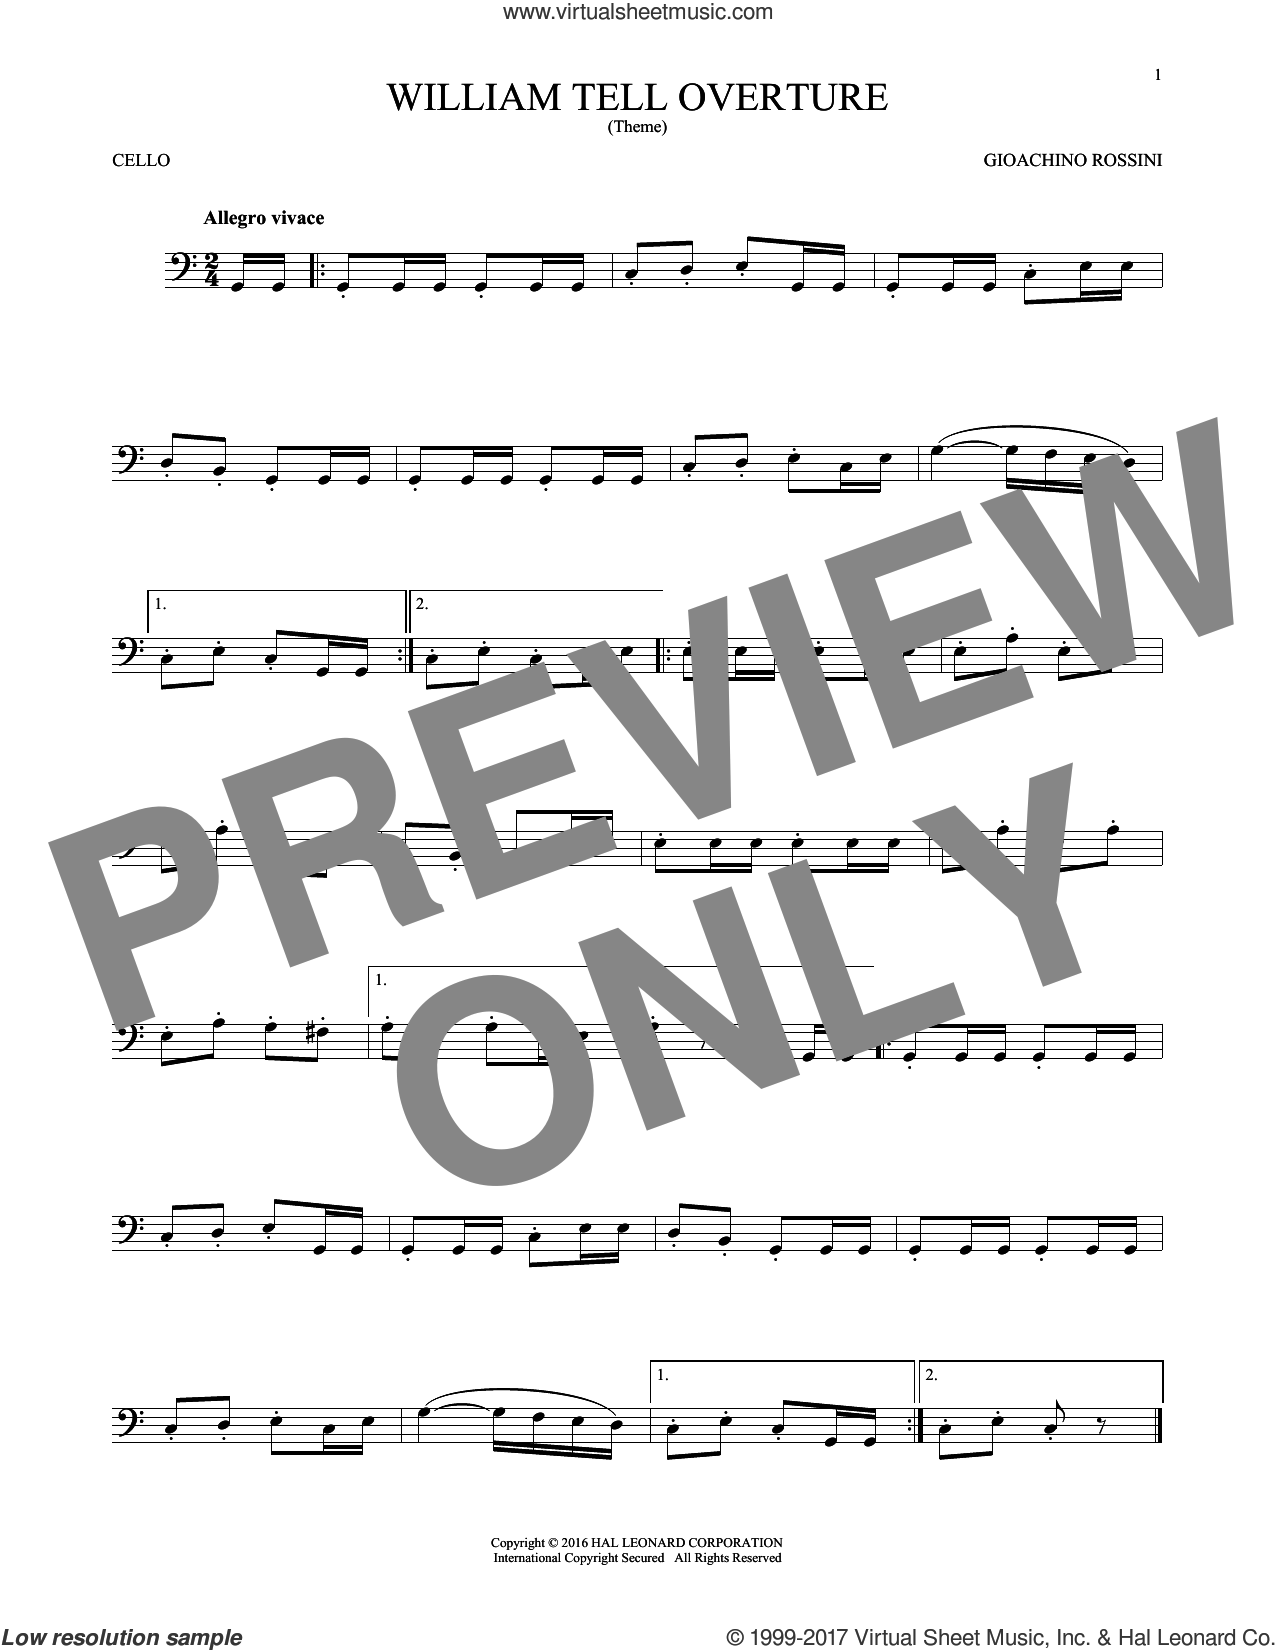 William Tell Overture sheet music for cello solo by Rossini, Gioacchino, classical score, intermediate. Score Image Preview.